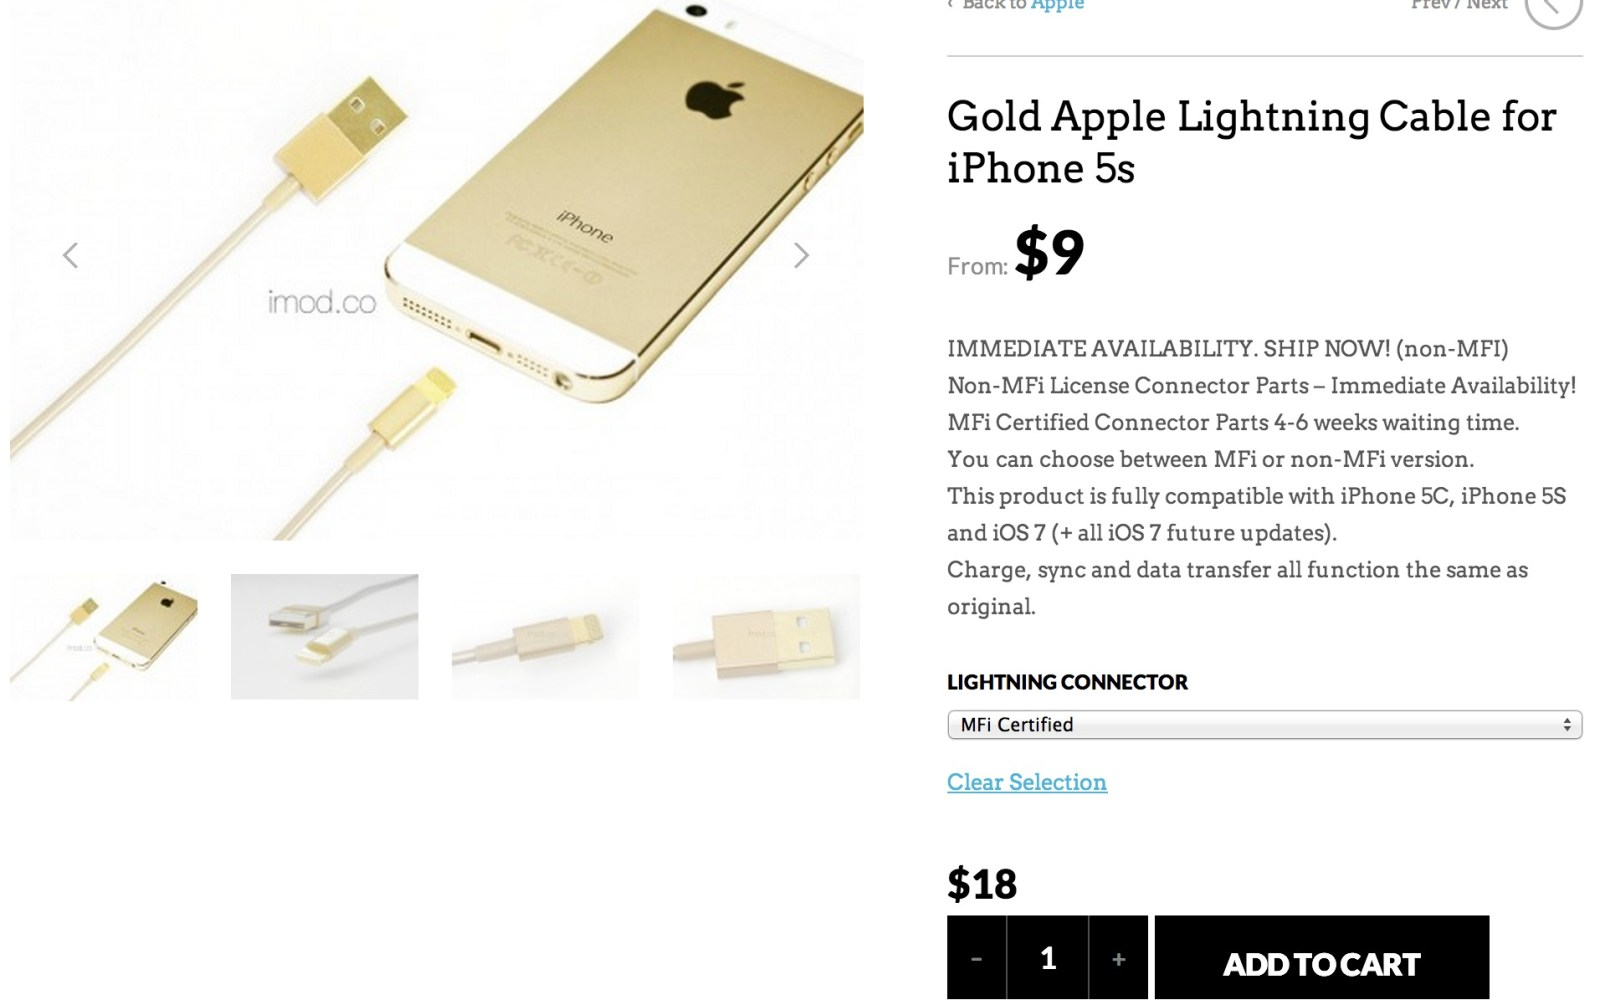 Why you should probably spend a little extra on these gold Lightning cables